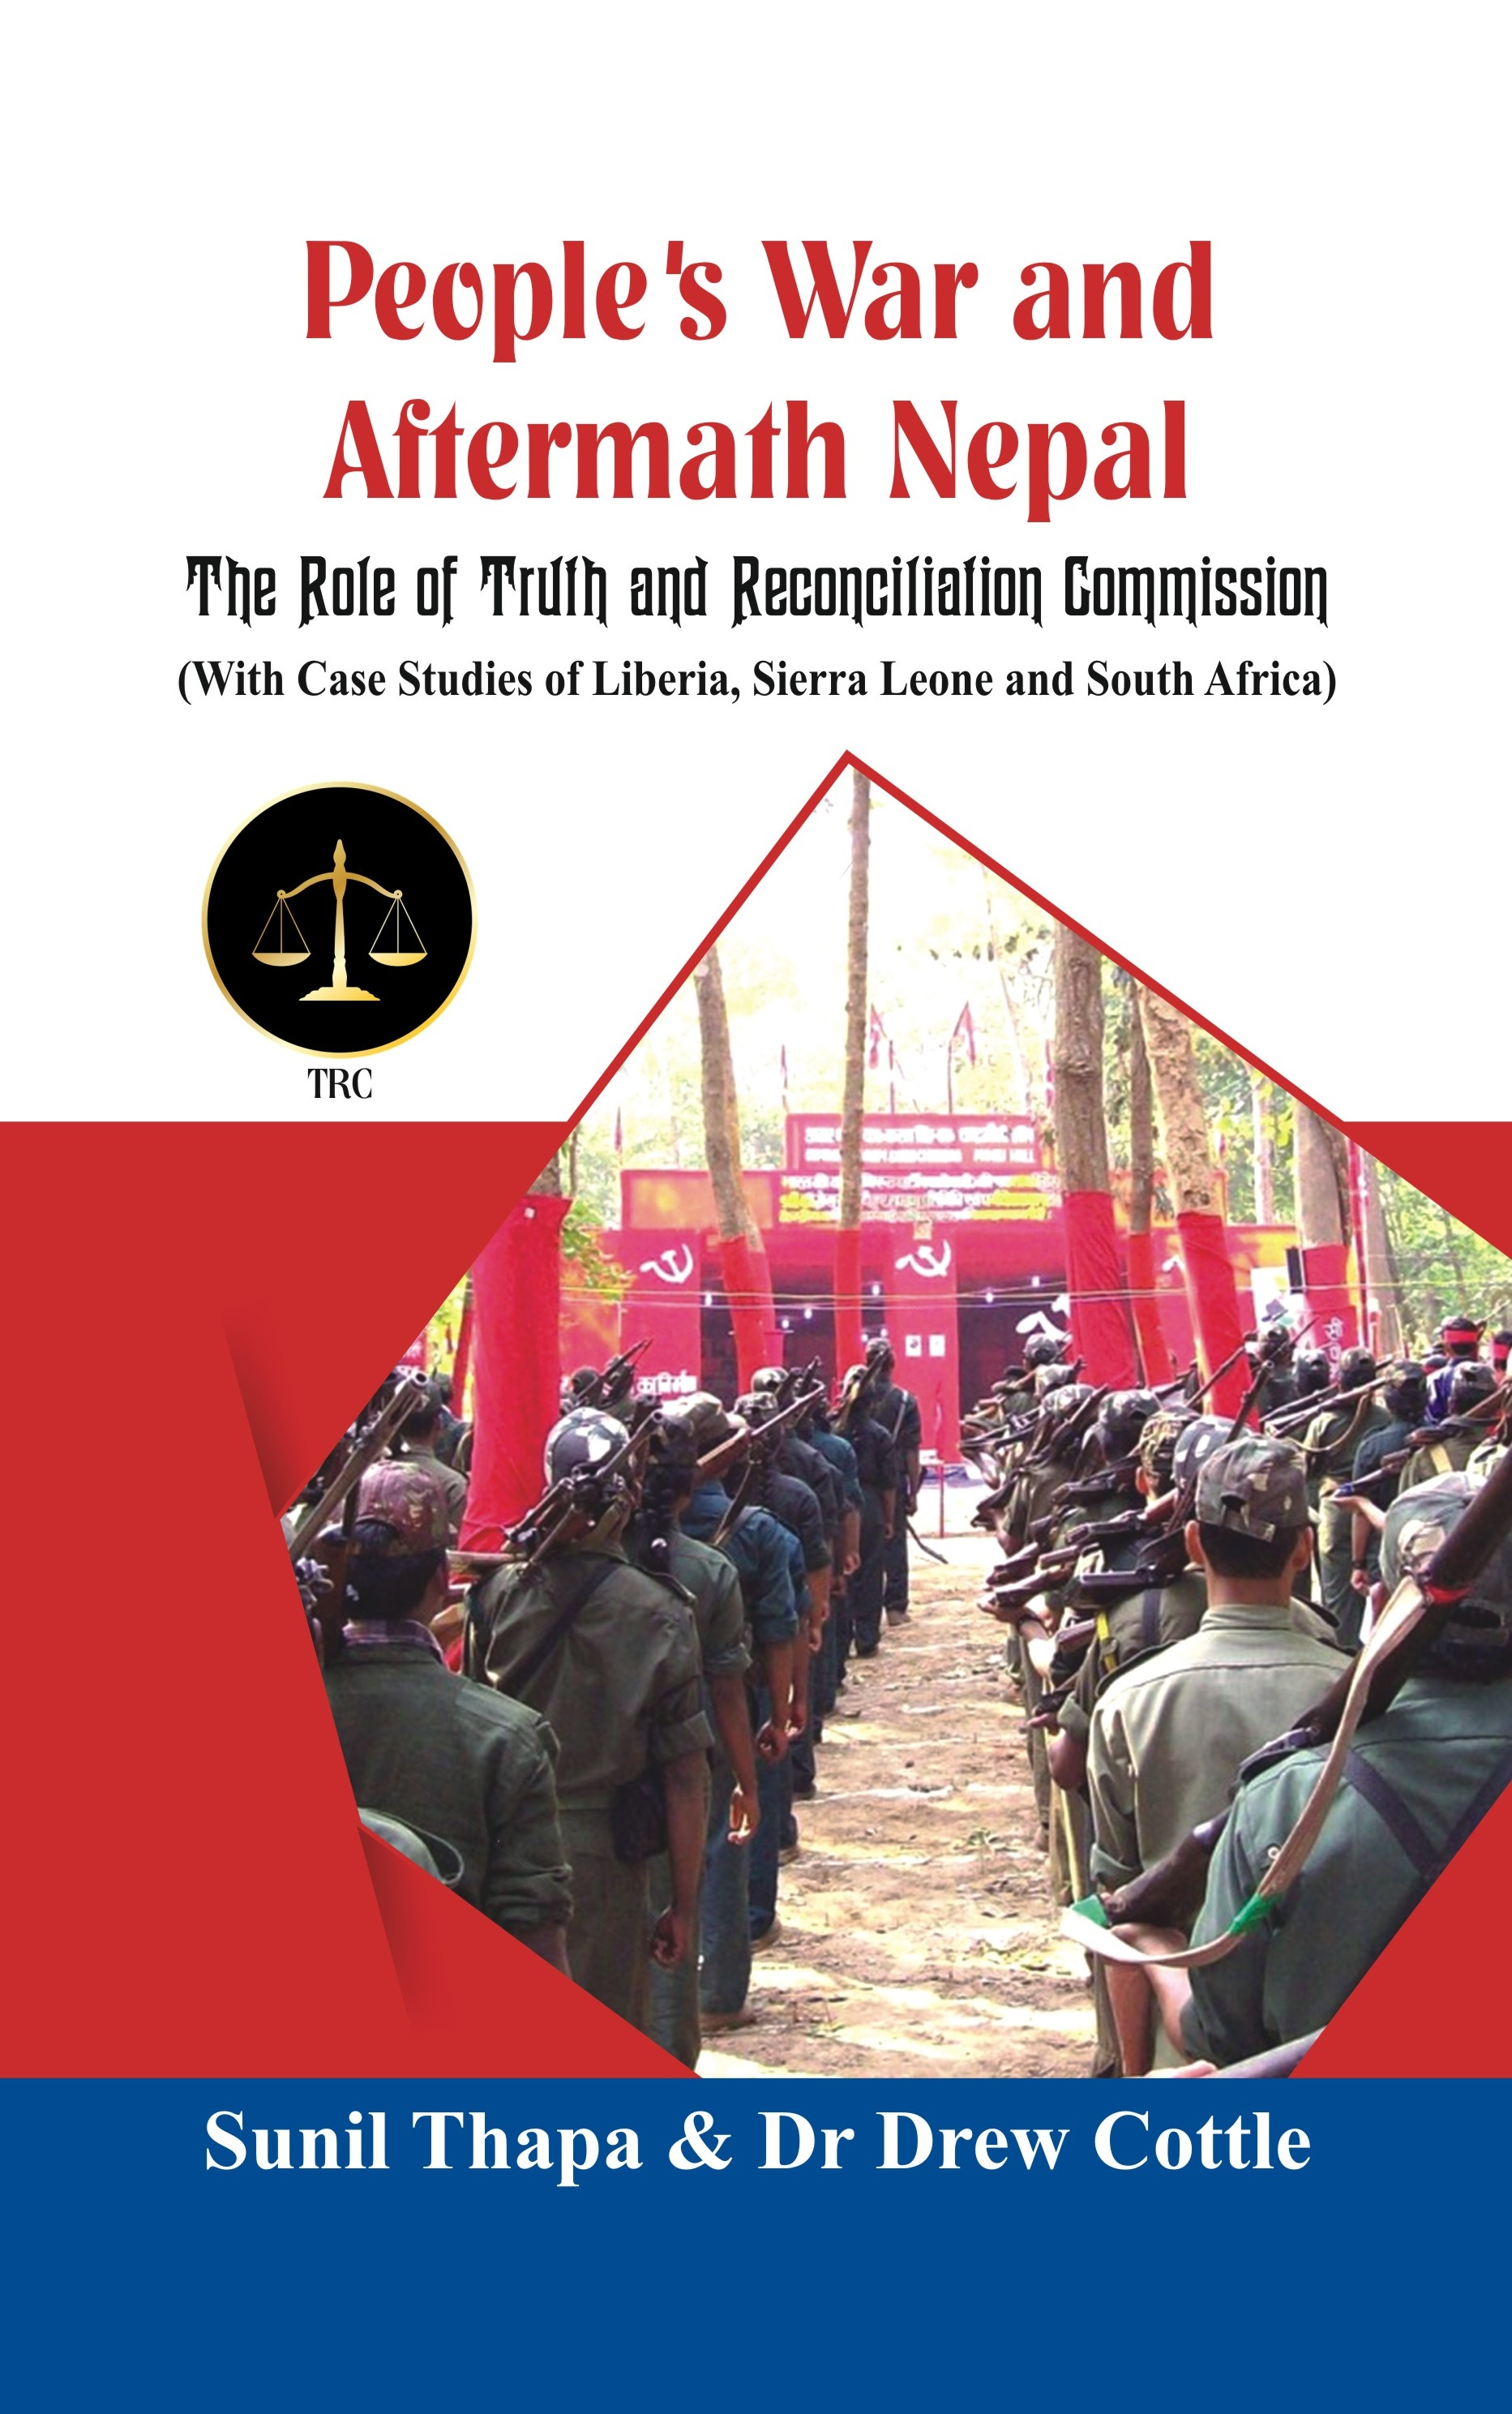 People's War and Aftermath Nepal: The Role of Trut…